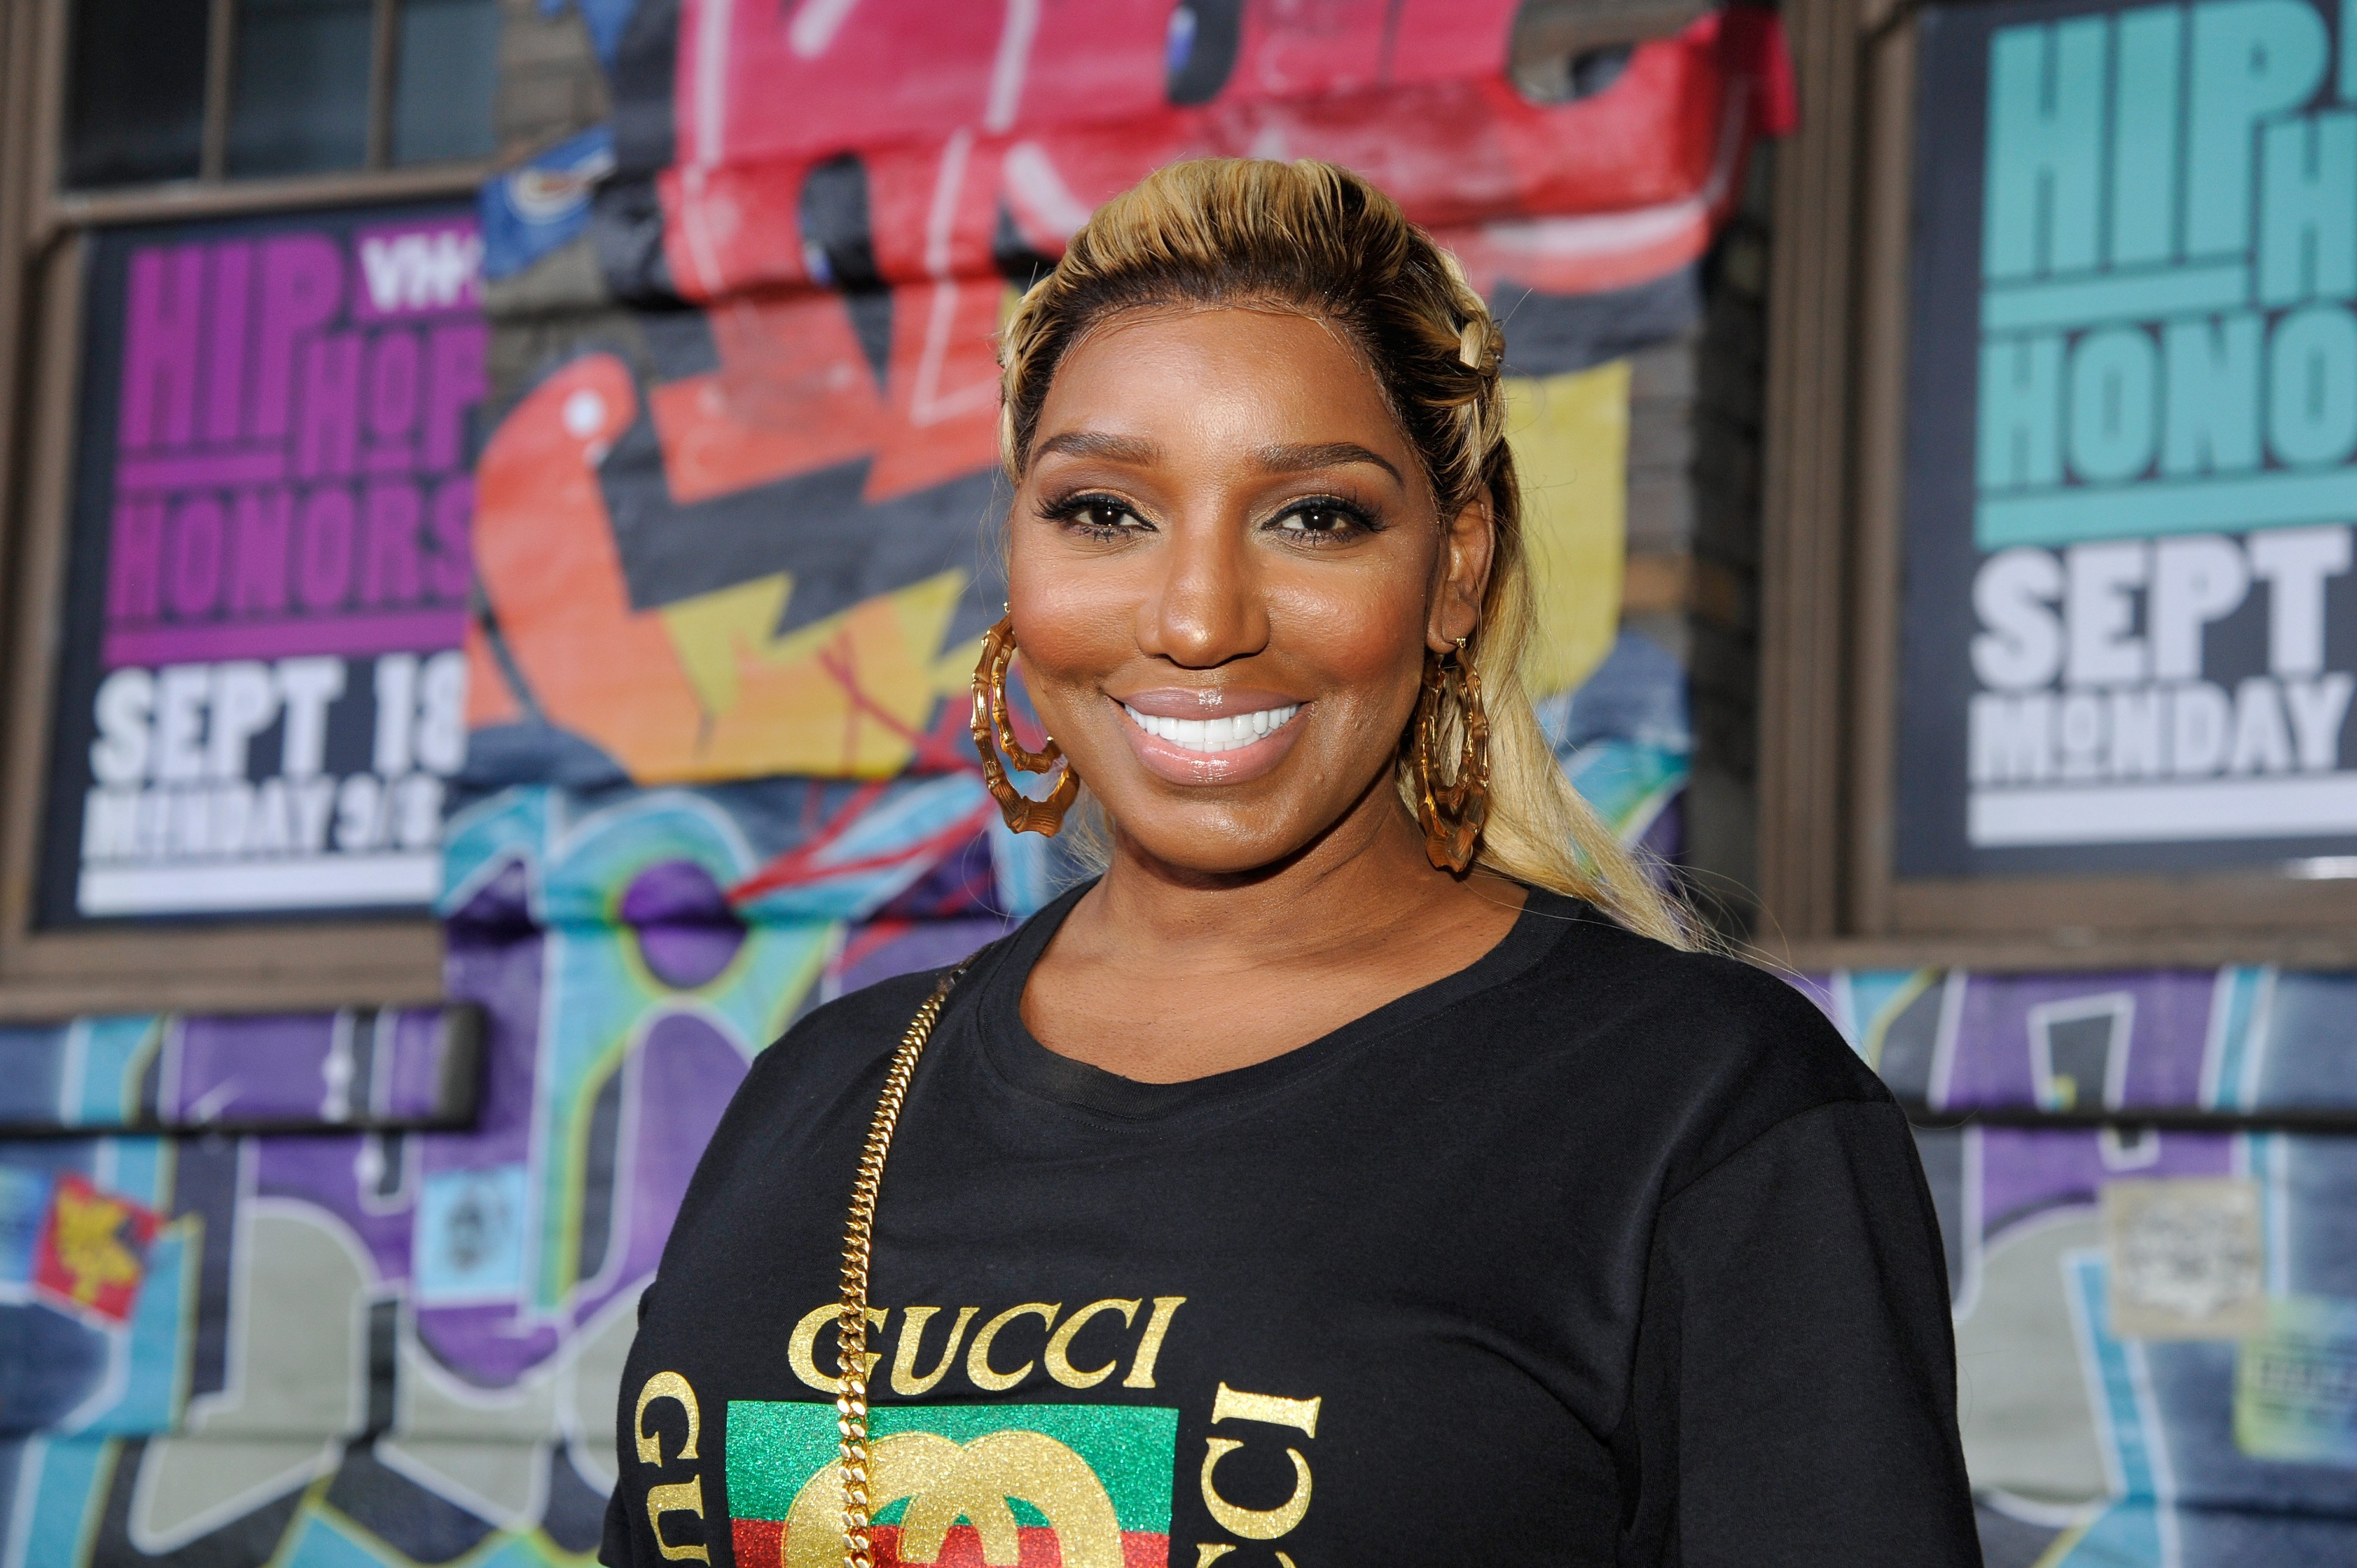 NeNe Leakes at the VH1 Hip Hop Honors: The 90s Game Changers on Sept. 17, 2017 in California | Photo: Getty Images